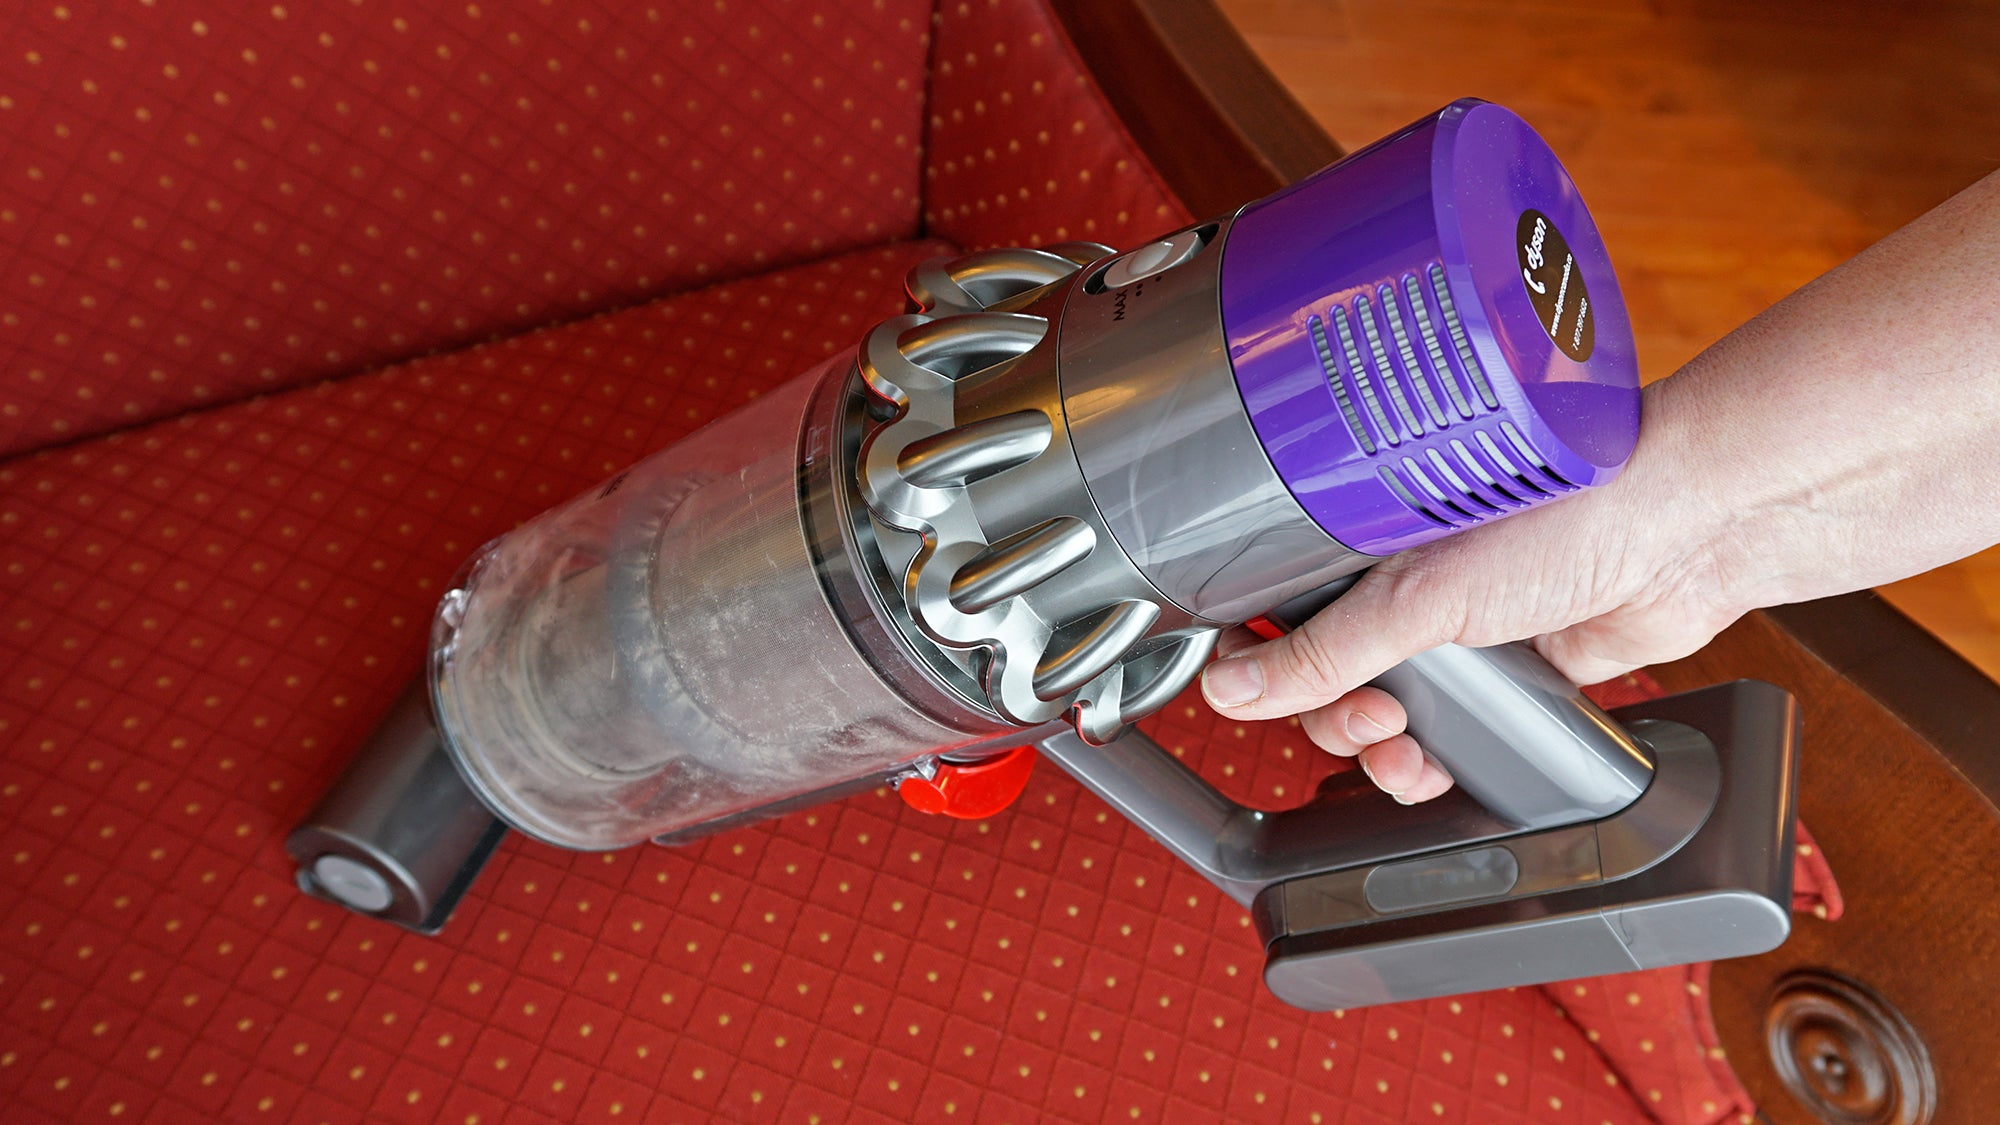 Dyson S Pricey Cordless Vac Is So Good It S Killing Cords